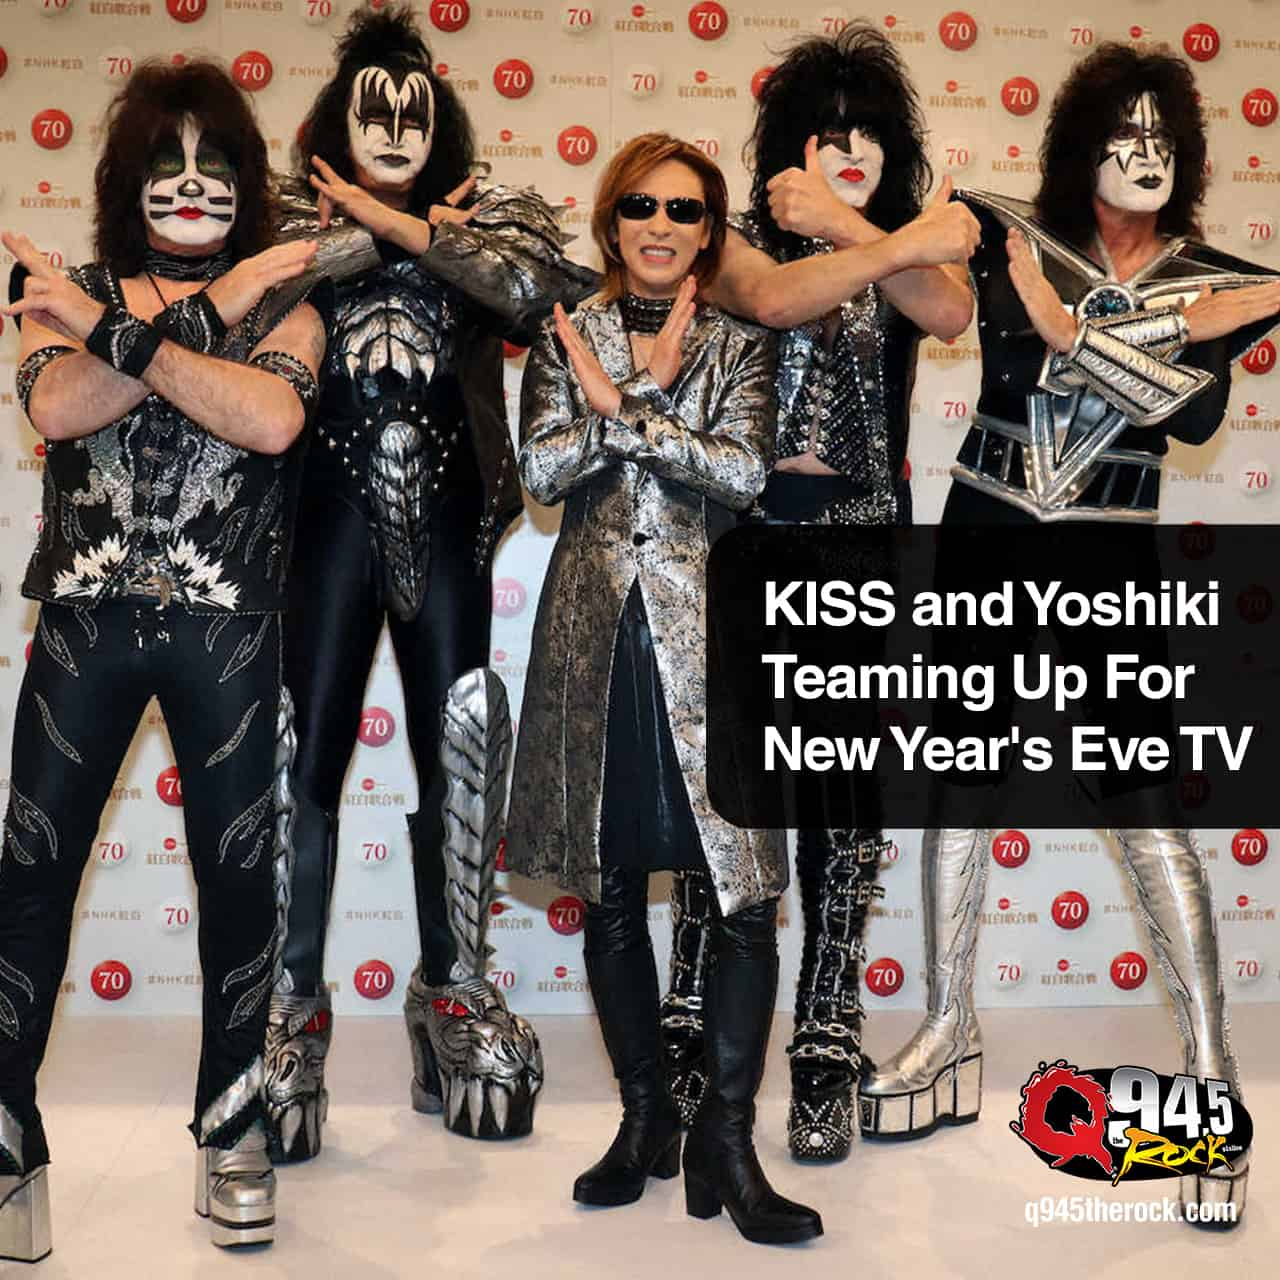 KISS and Yoshiki Teaming Up For New Year's Eve TV